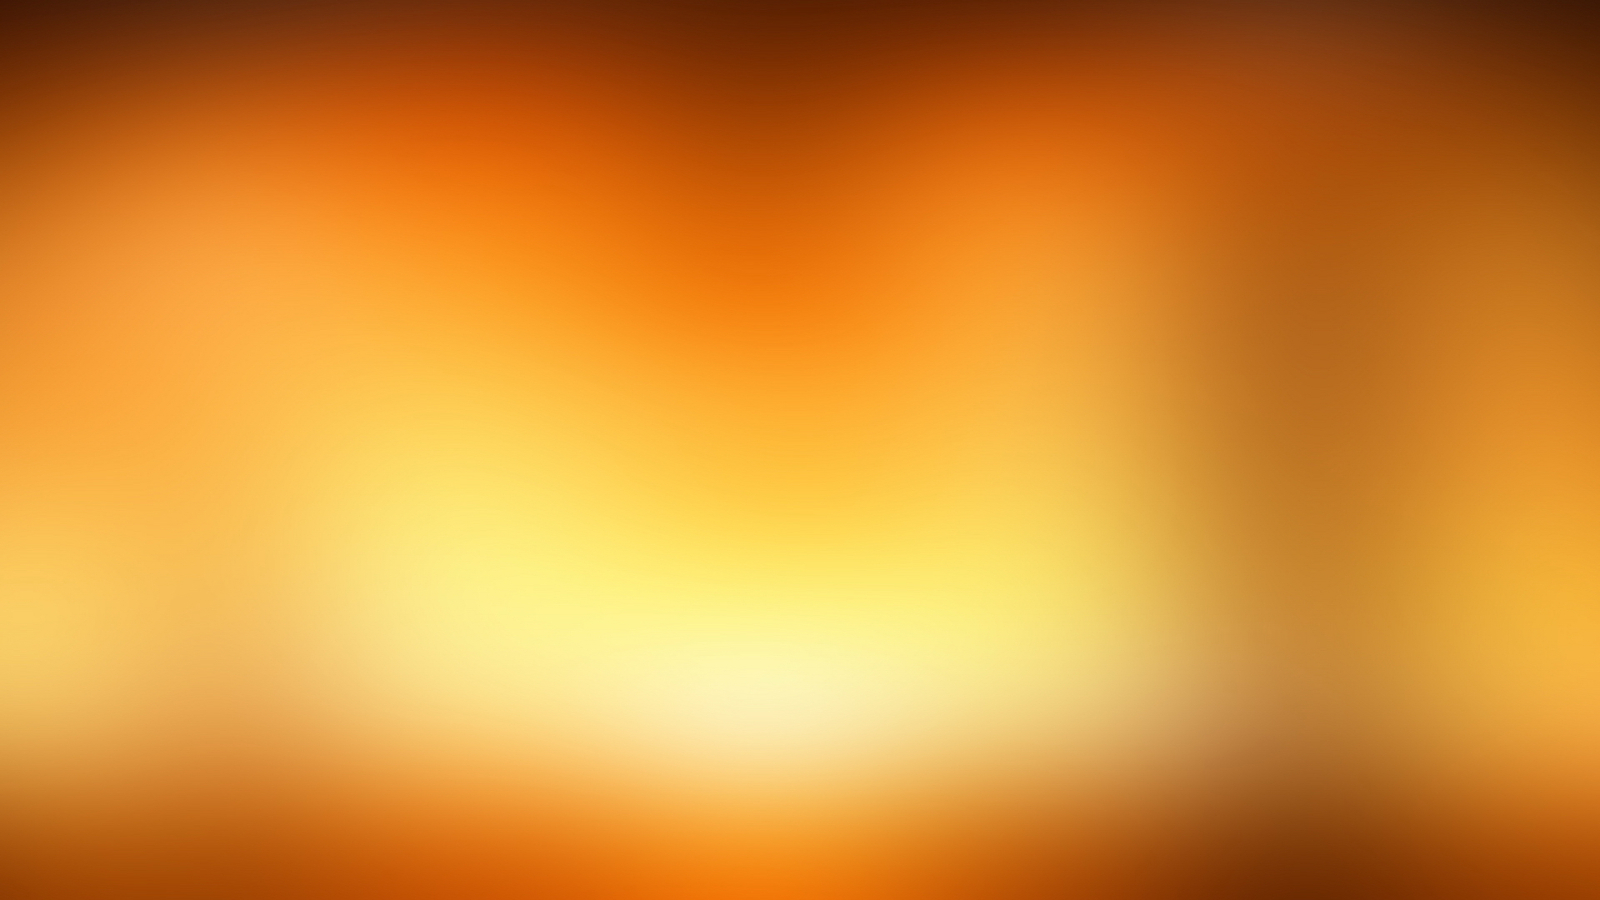 Gold And Orange Wallpaper